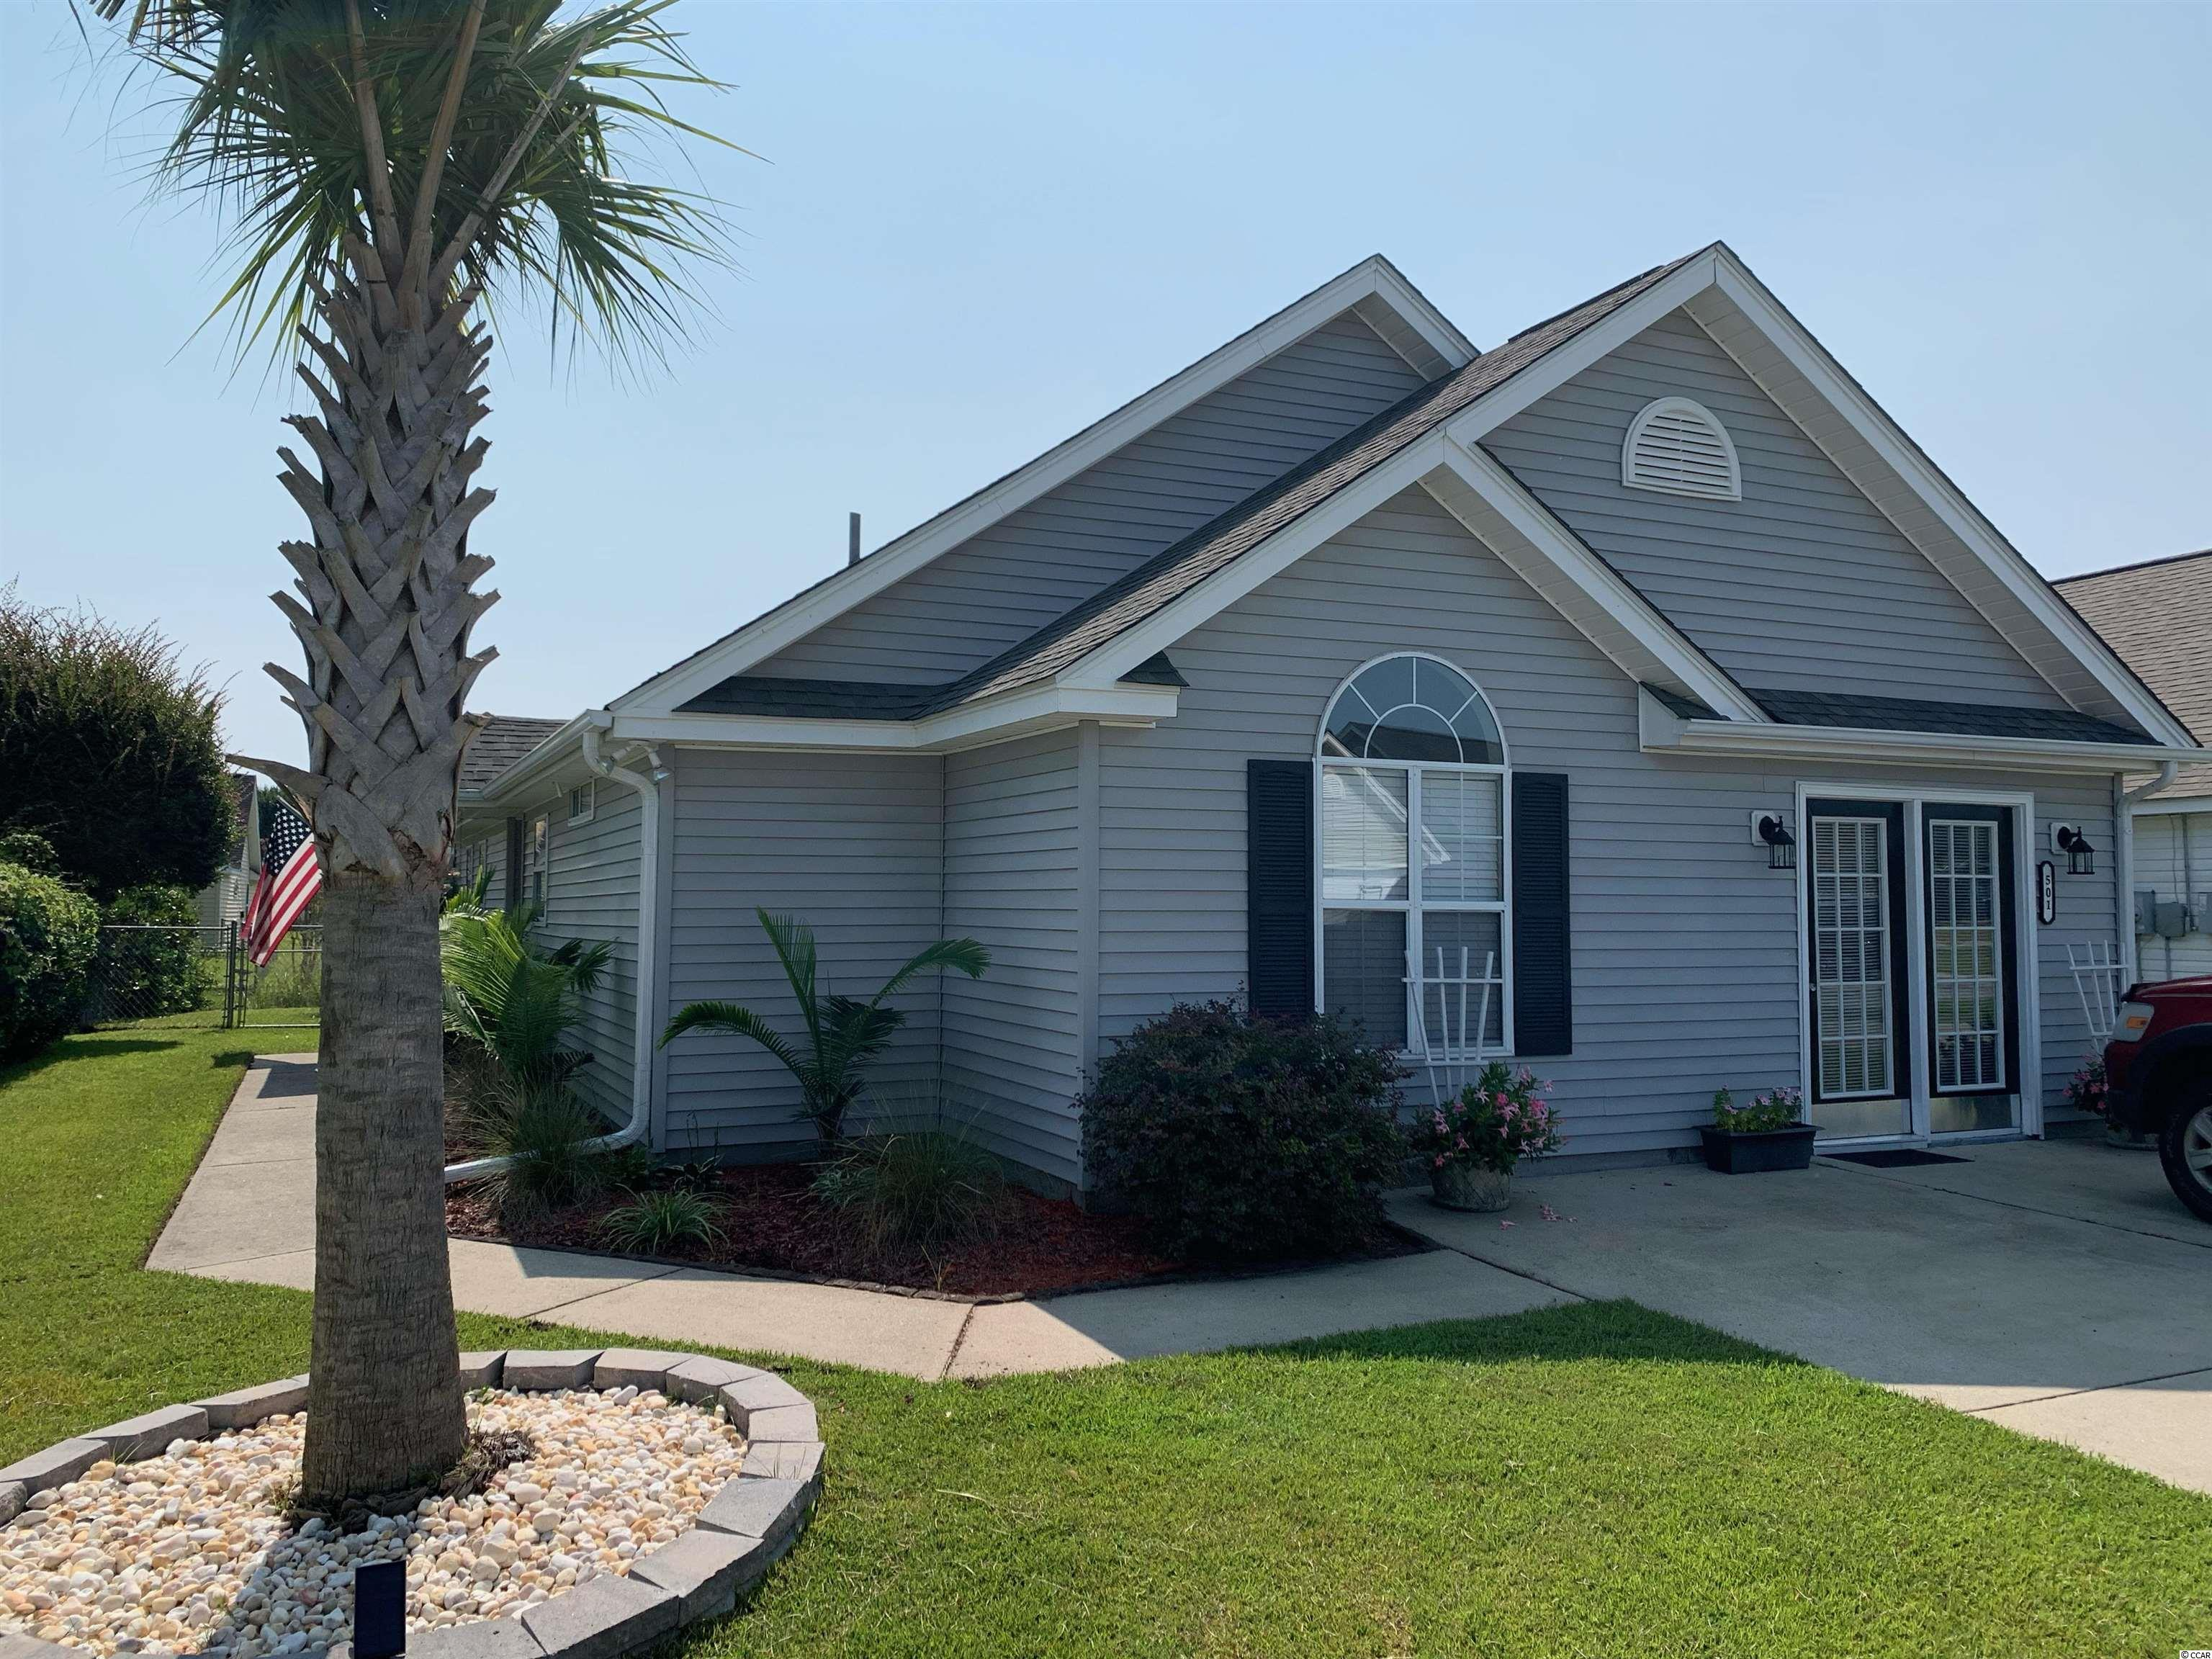 Must see this charming 4 bedroom 2 bath ranch home located in the Mallard Landing subdivision near Surfside beach.  Beautifully updated, stainless steel appliances, tile in the kitchen living, dining area vaulted ceiling. Great location convenient shopping, dining, and all the beach has to offer.